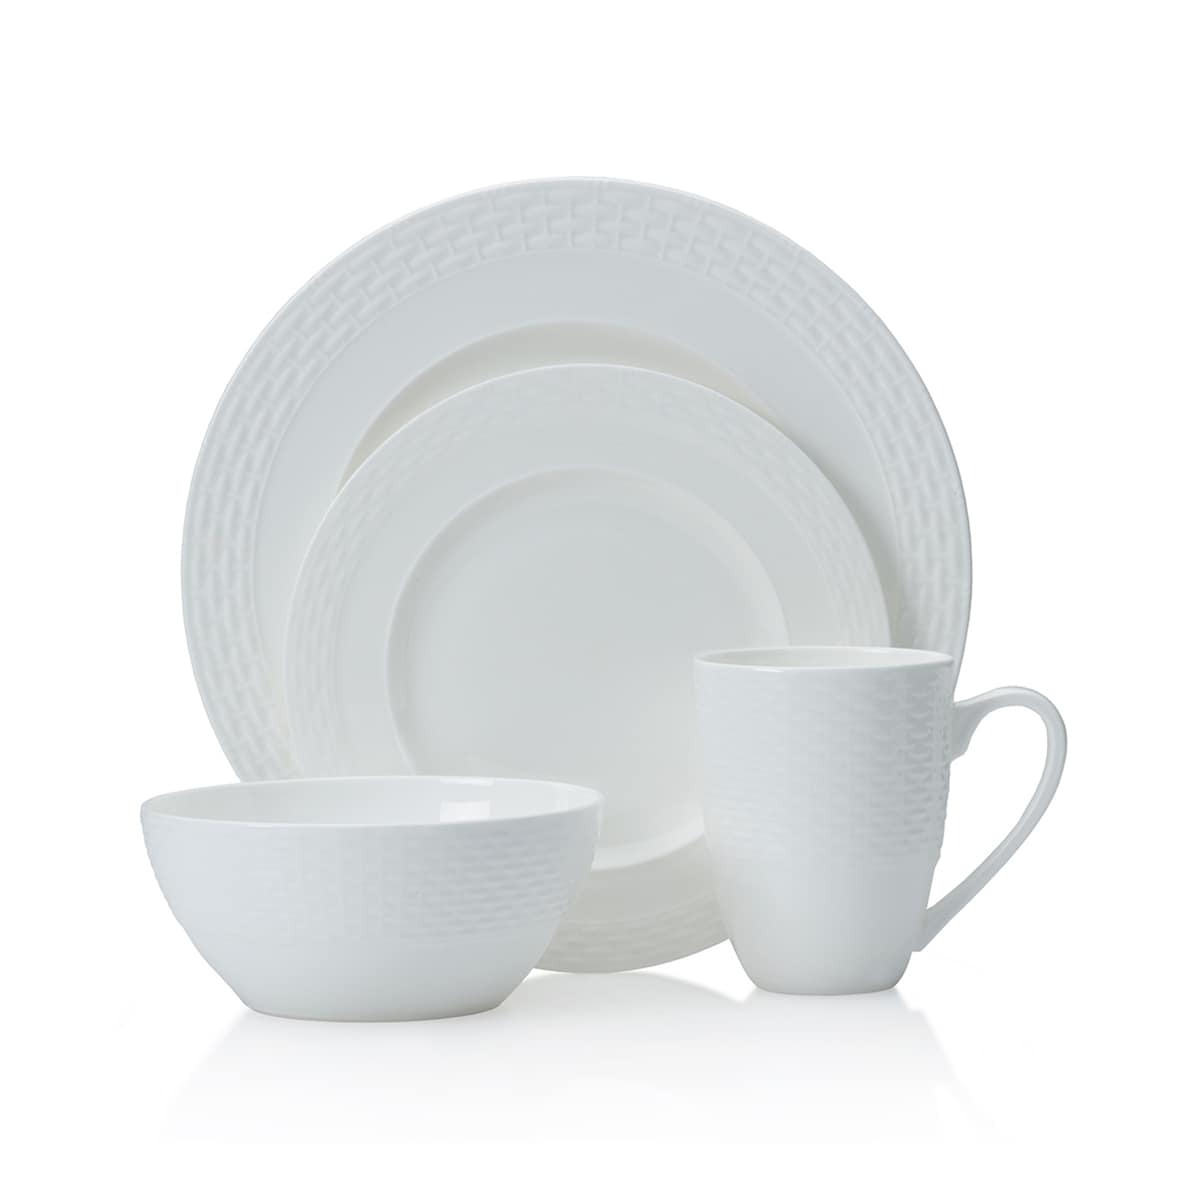 6 Dinnerware Sets That Will Outlast Your Design Whims: gallery image 6